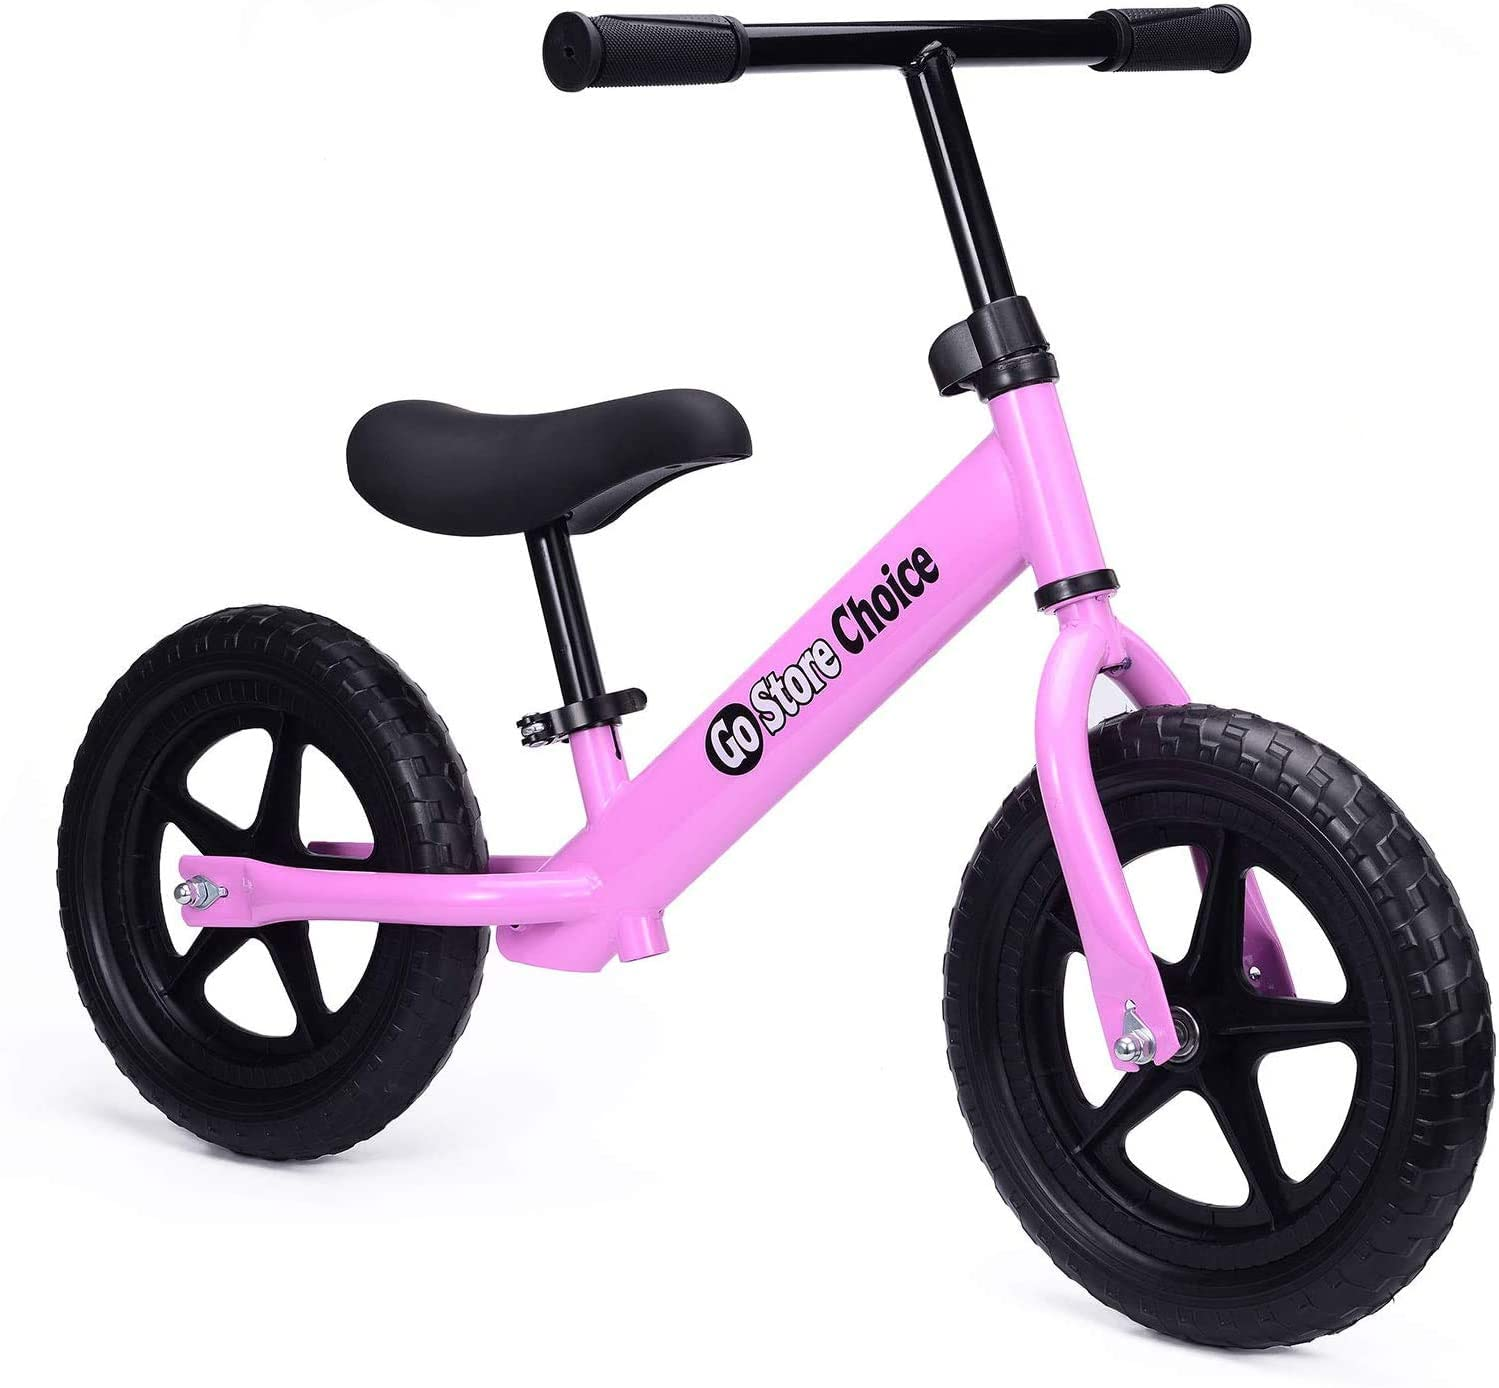 Gostorechoice Kids Balance Bike Boys and Girls 3-6 Years Old with EVA Wheels No Pedal Adjustable Seat